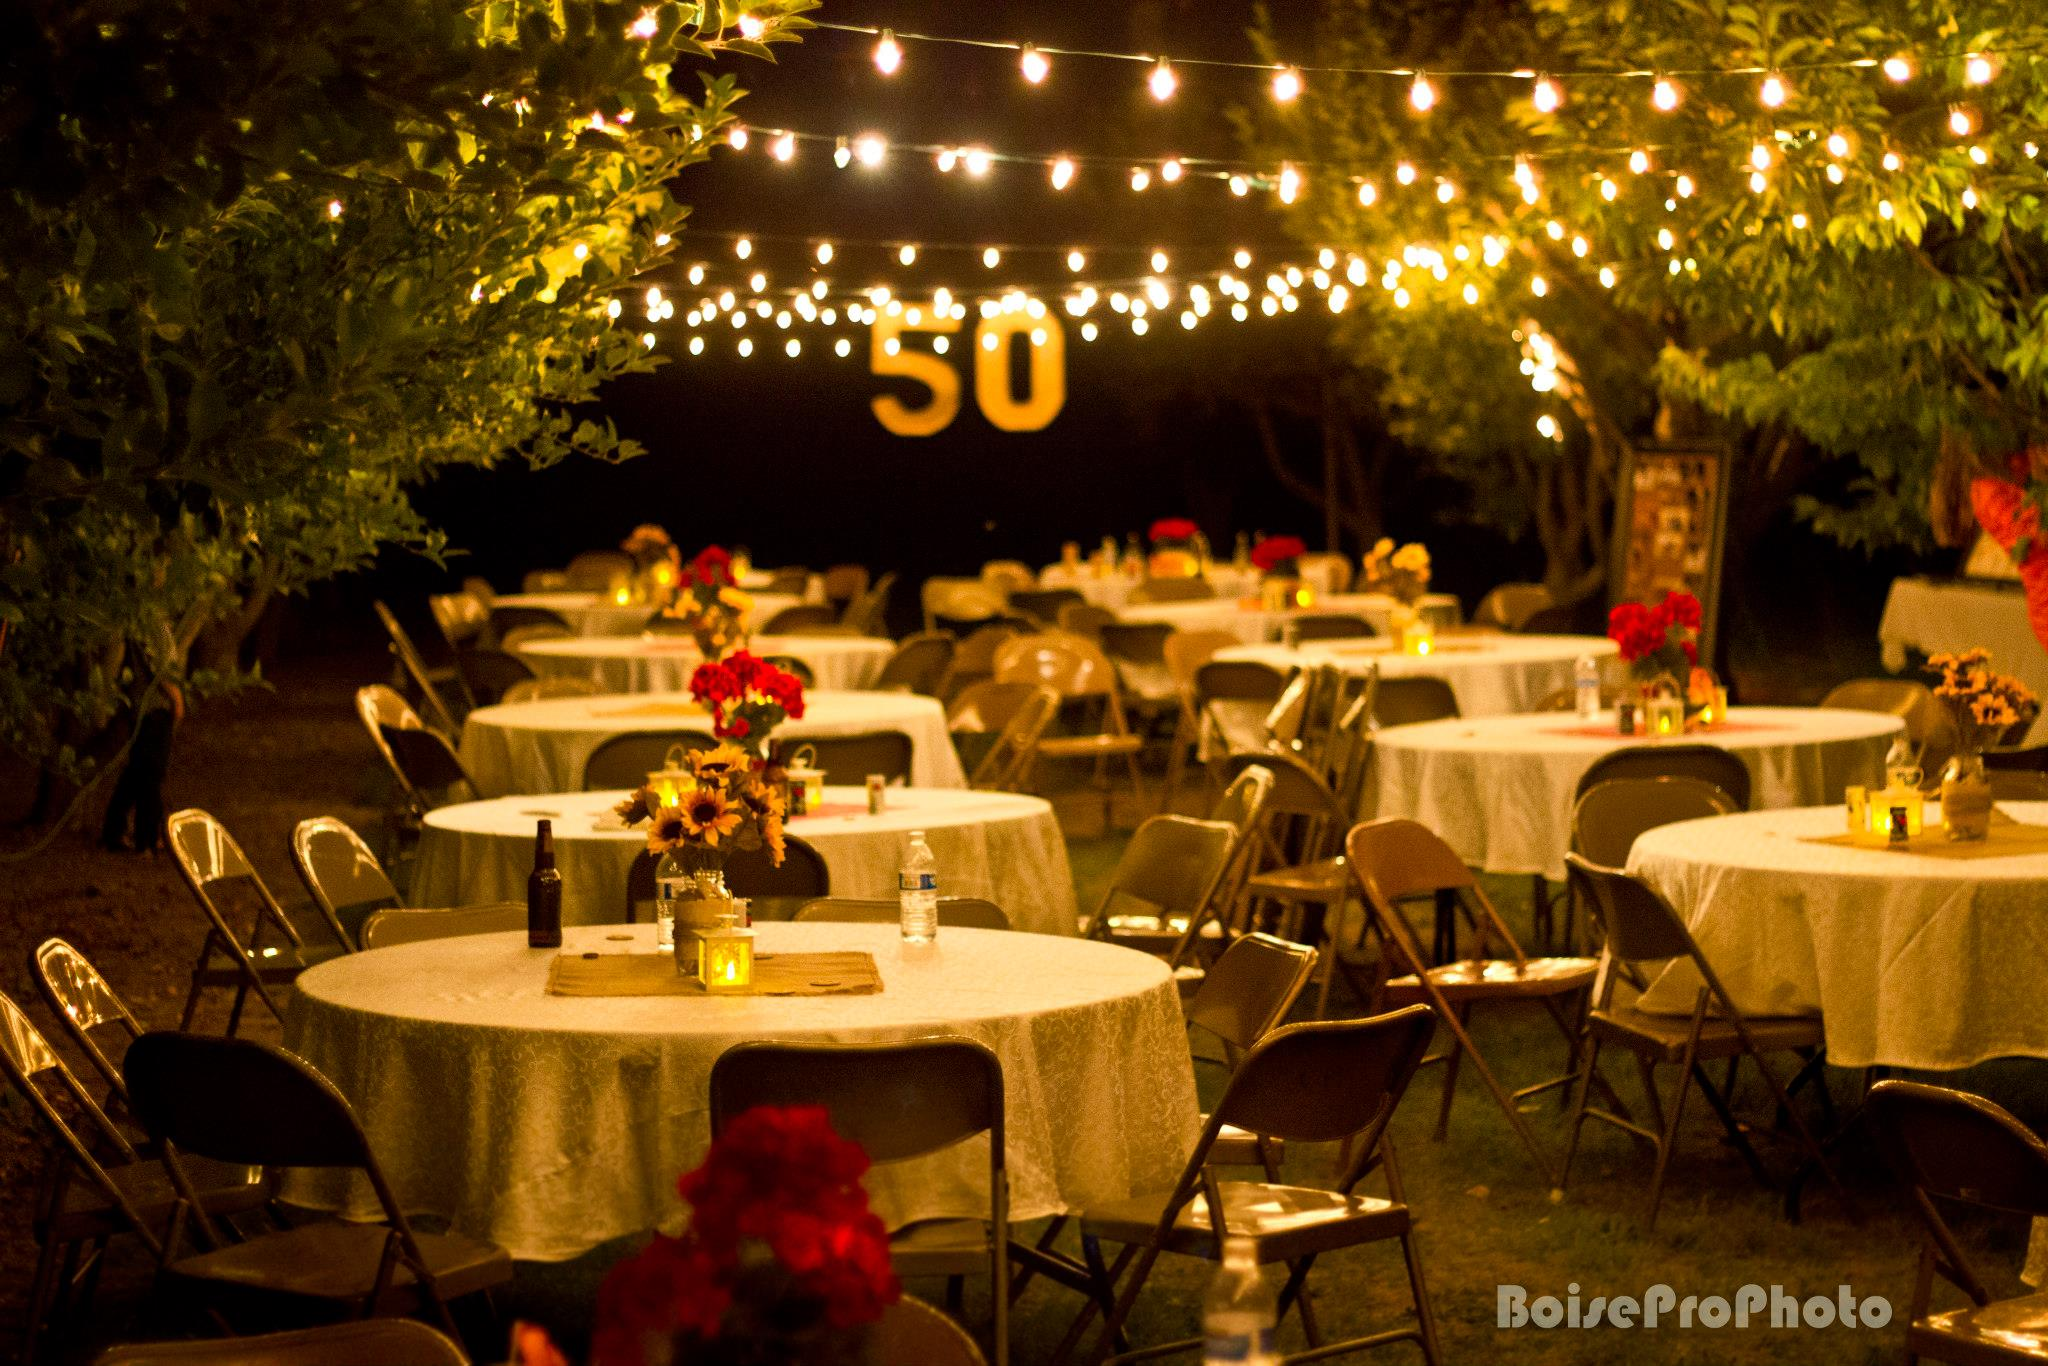 Diy 50th wedding anniversary party from salty bison for 50 birthday decoration ideas